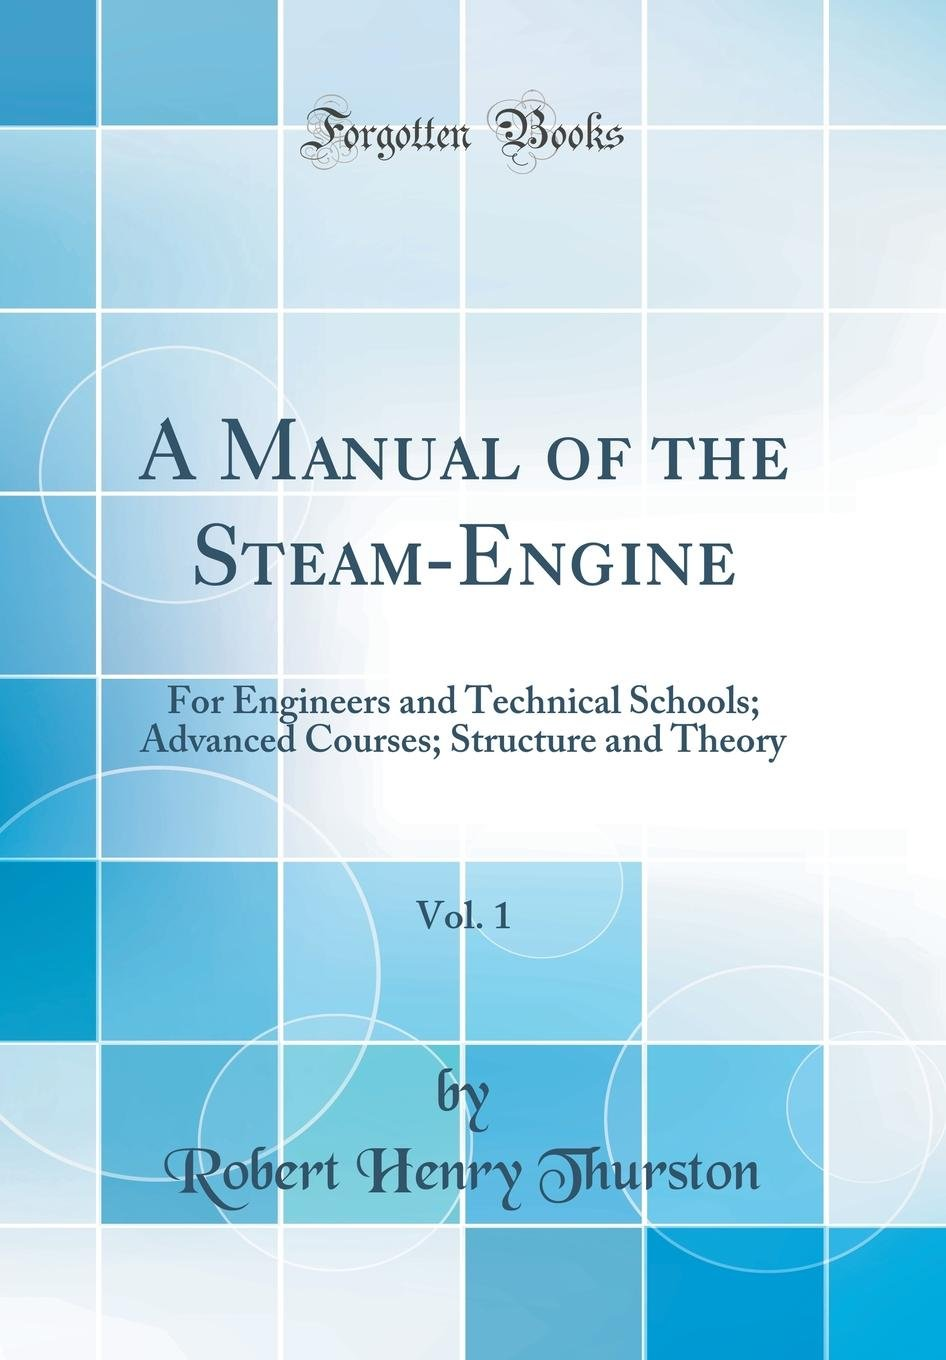 A Manual of the Steam-Engine, Vol. 1: For Engineers and Technical Schools; Advanced Courses; Structure and Theory (Classic Reprint) pdf